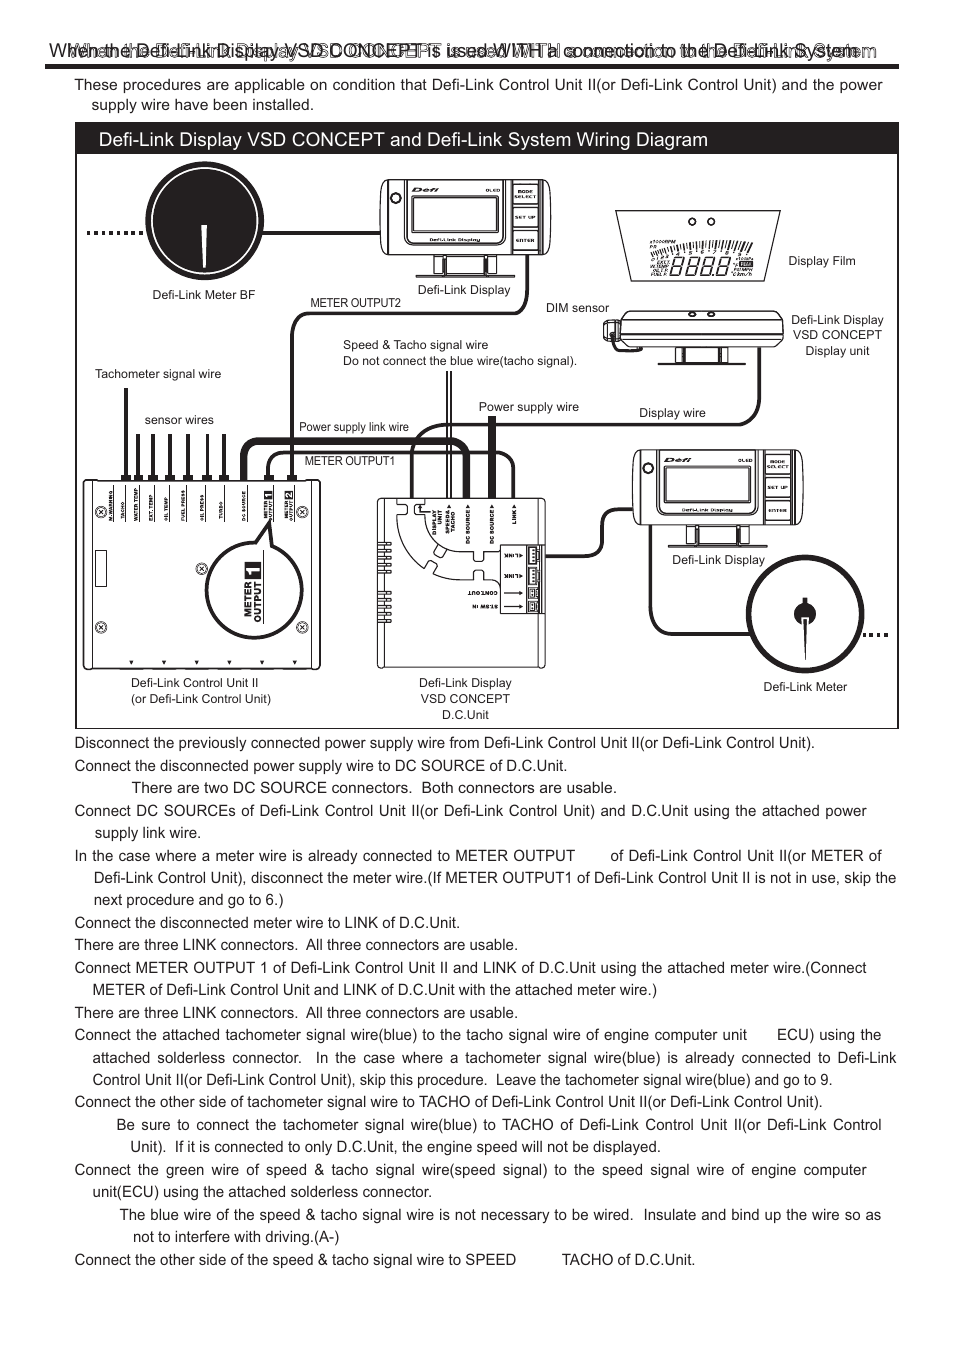 defi link vsd concept page4 defi link vsd concept user manual page 4 16 defi gauge wiring diagram at readyjetset.co